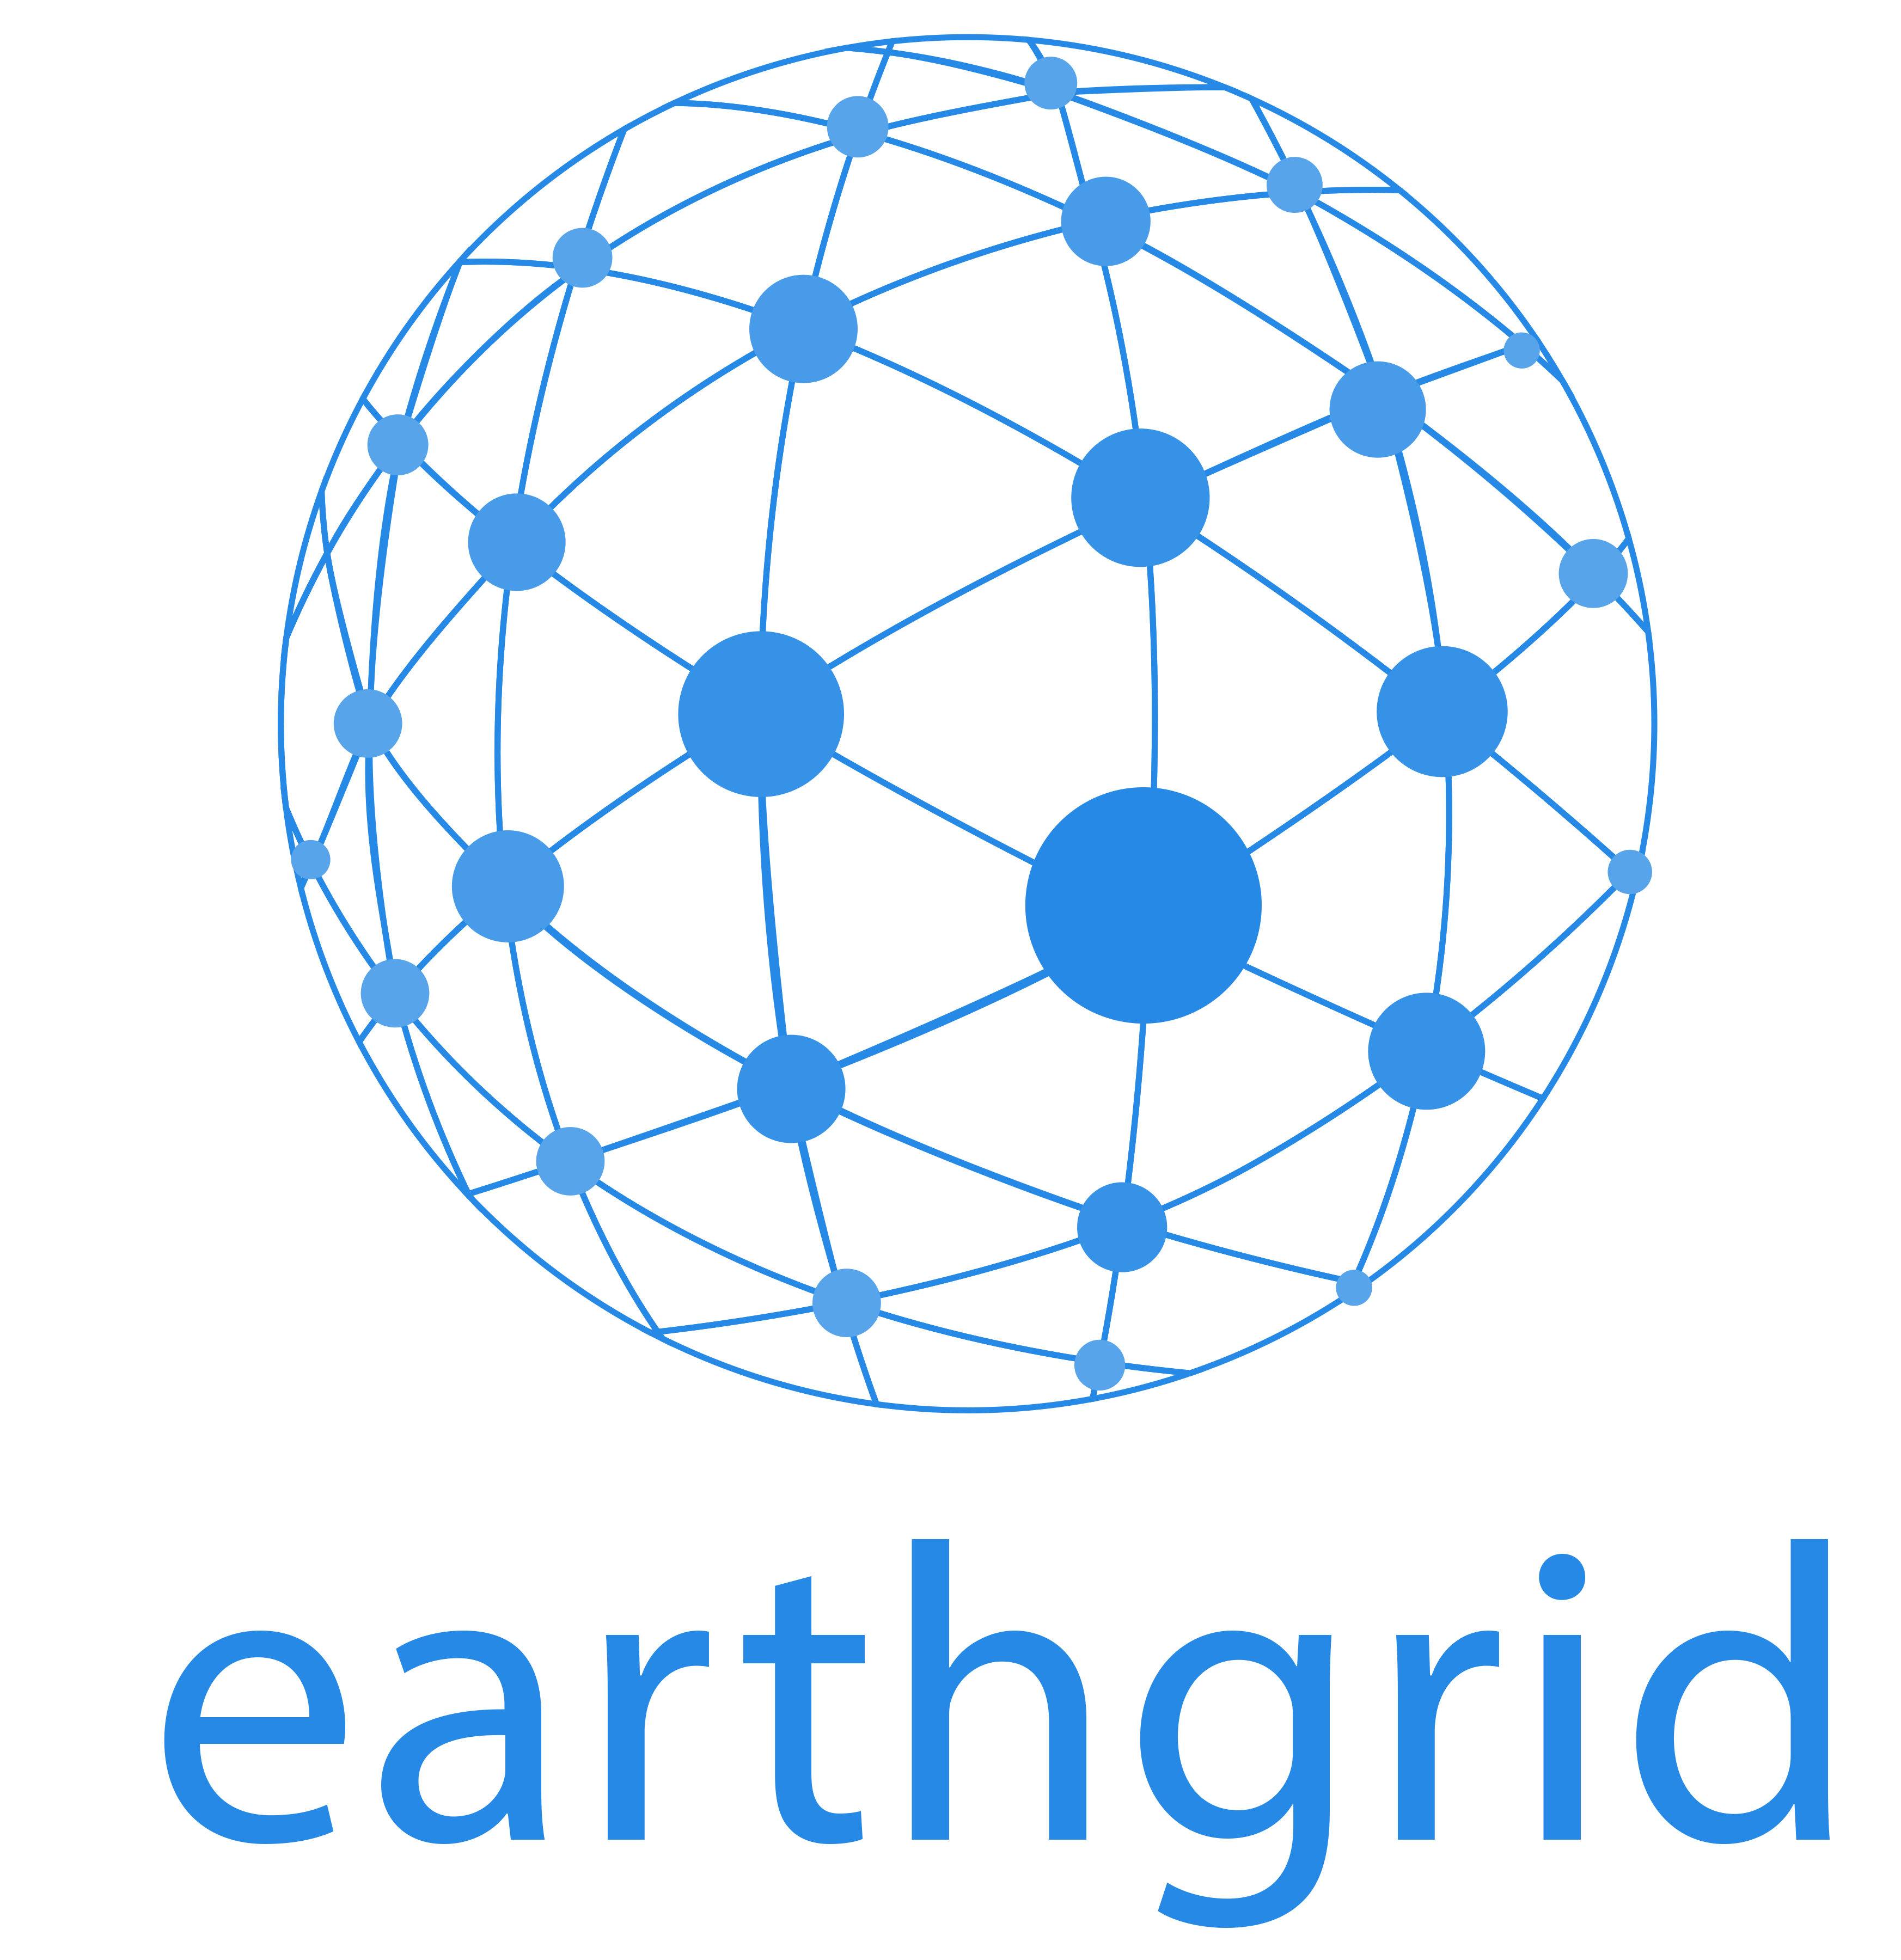 Earthgrid Business